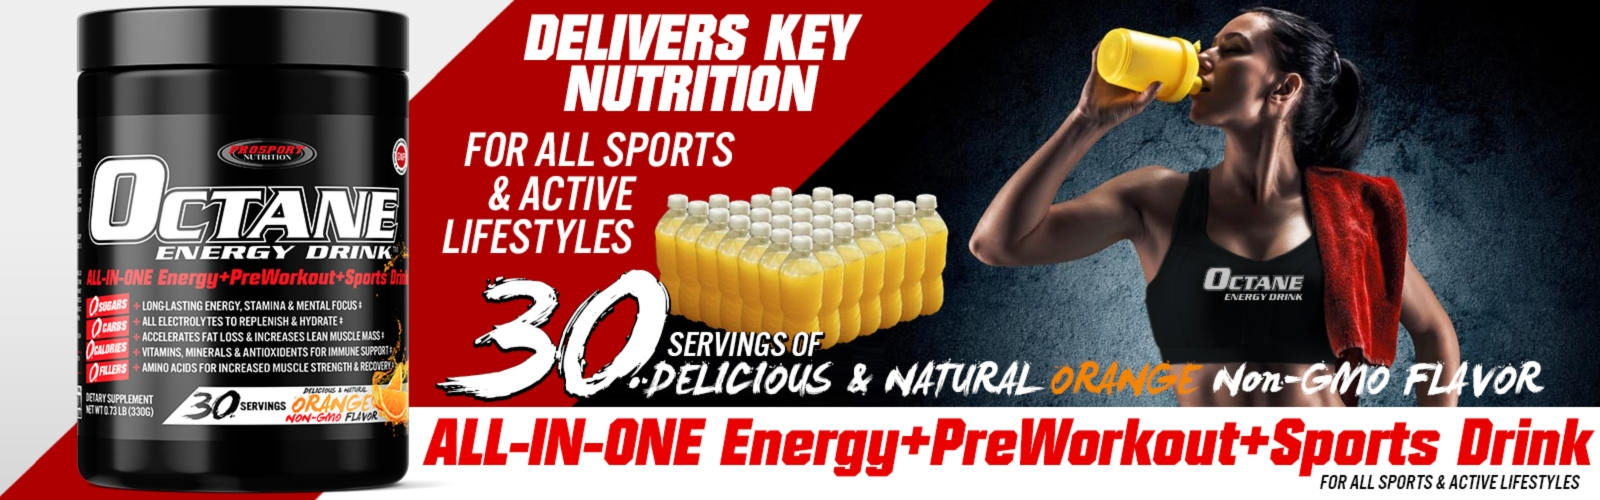 Showroom - PROSPORT NUTRITION